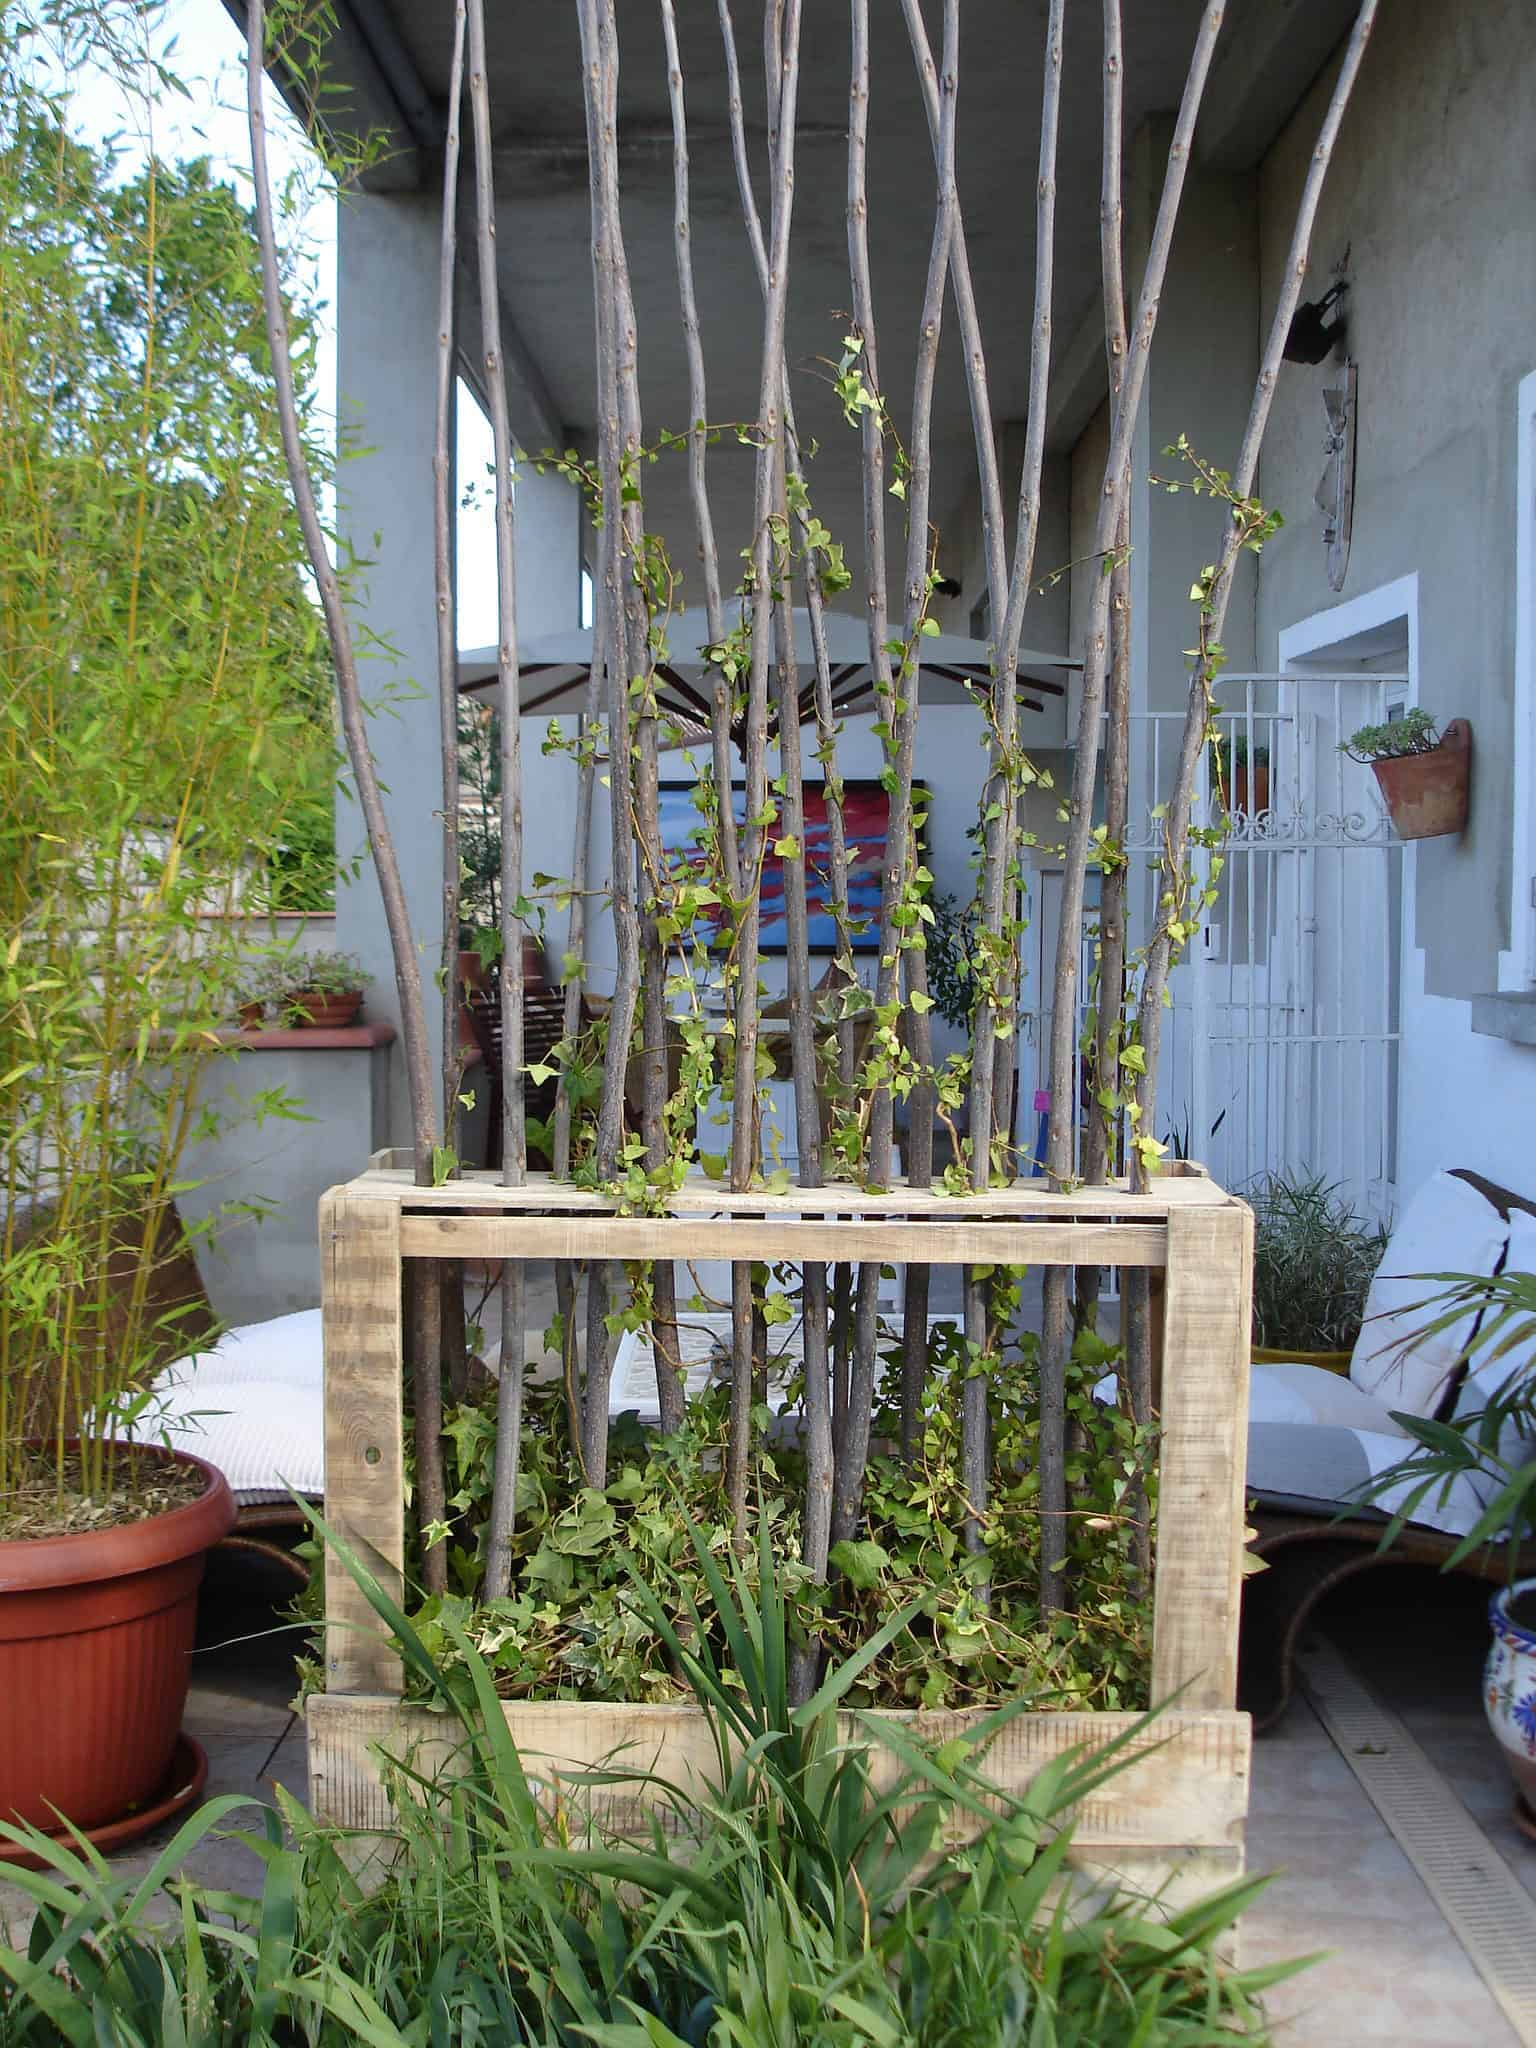 Upcycled Wooden Pallet Vegetal Fence